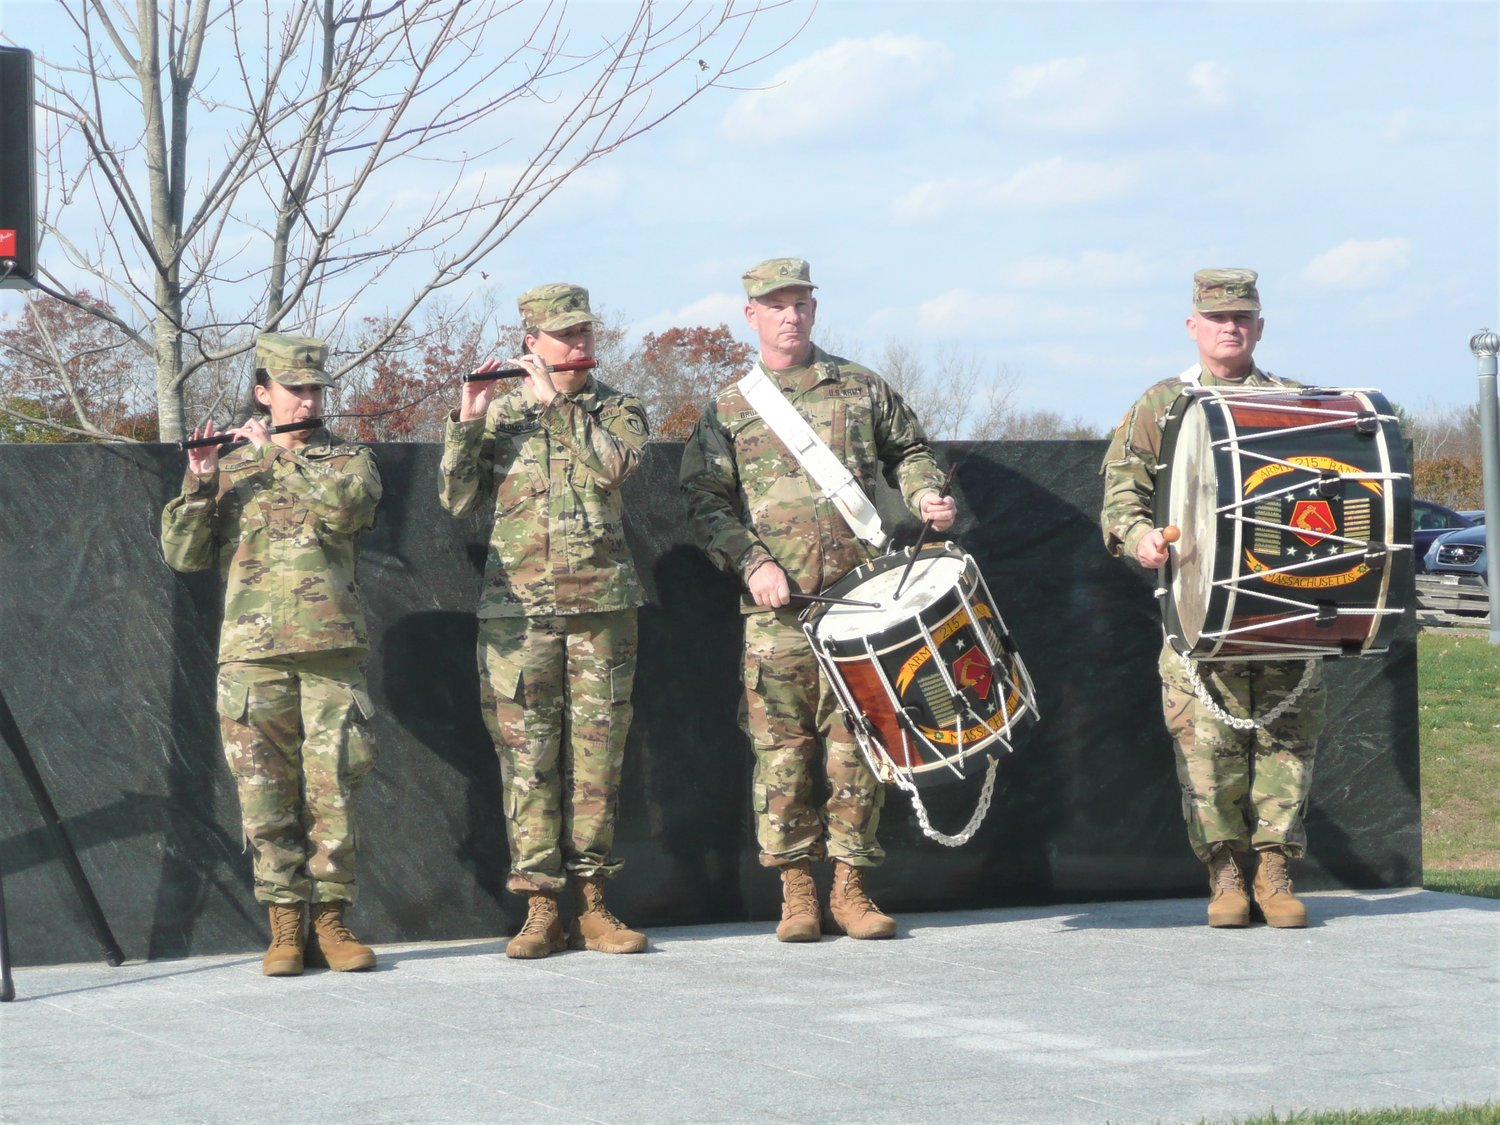 The 215th Army Band